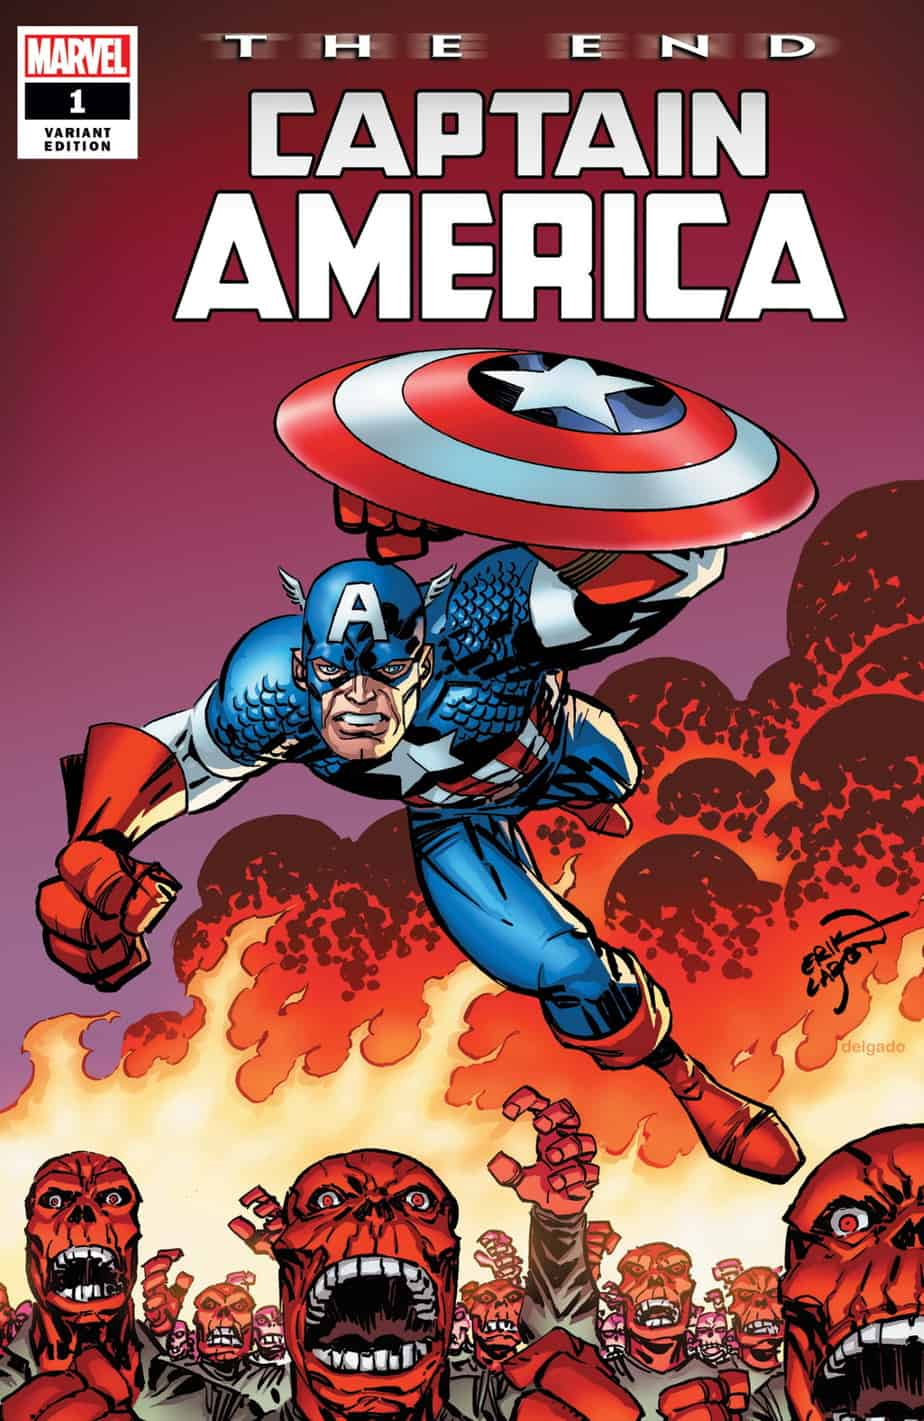 CAPTAIN AMERICA: The End #1